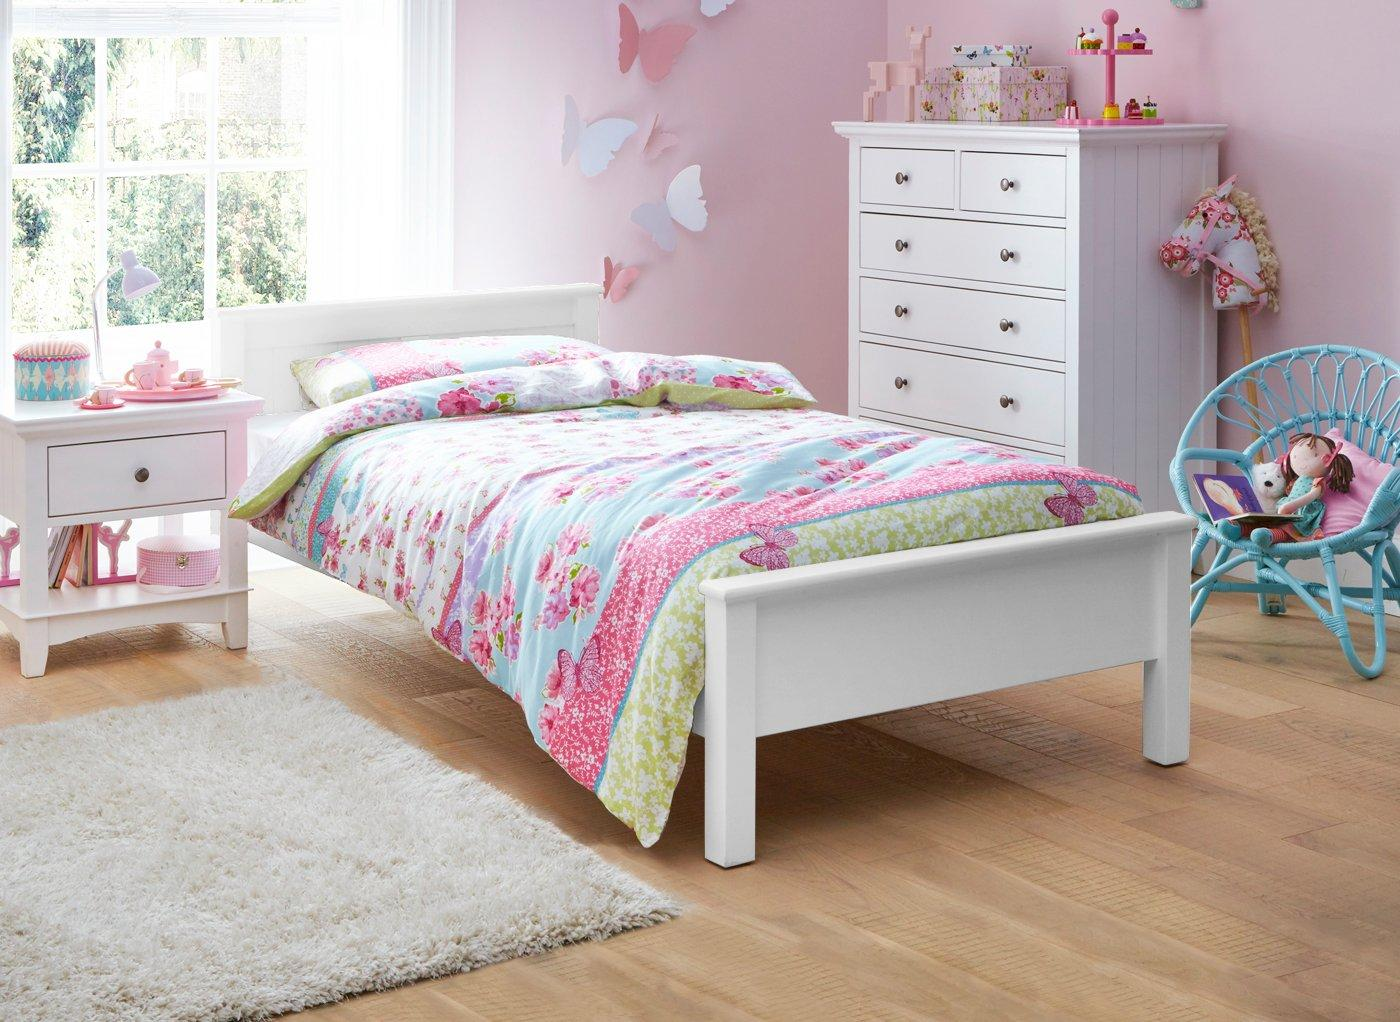 hutchin-low-rise-wooden-bed-frame